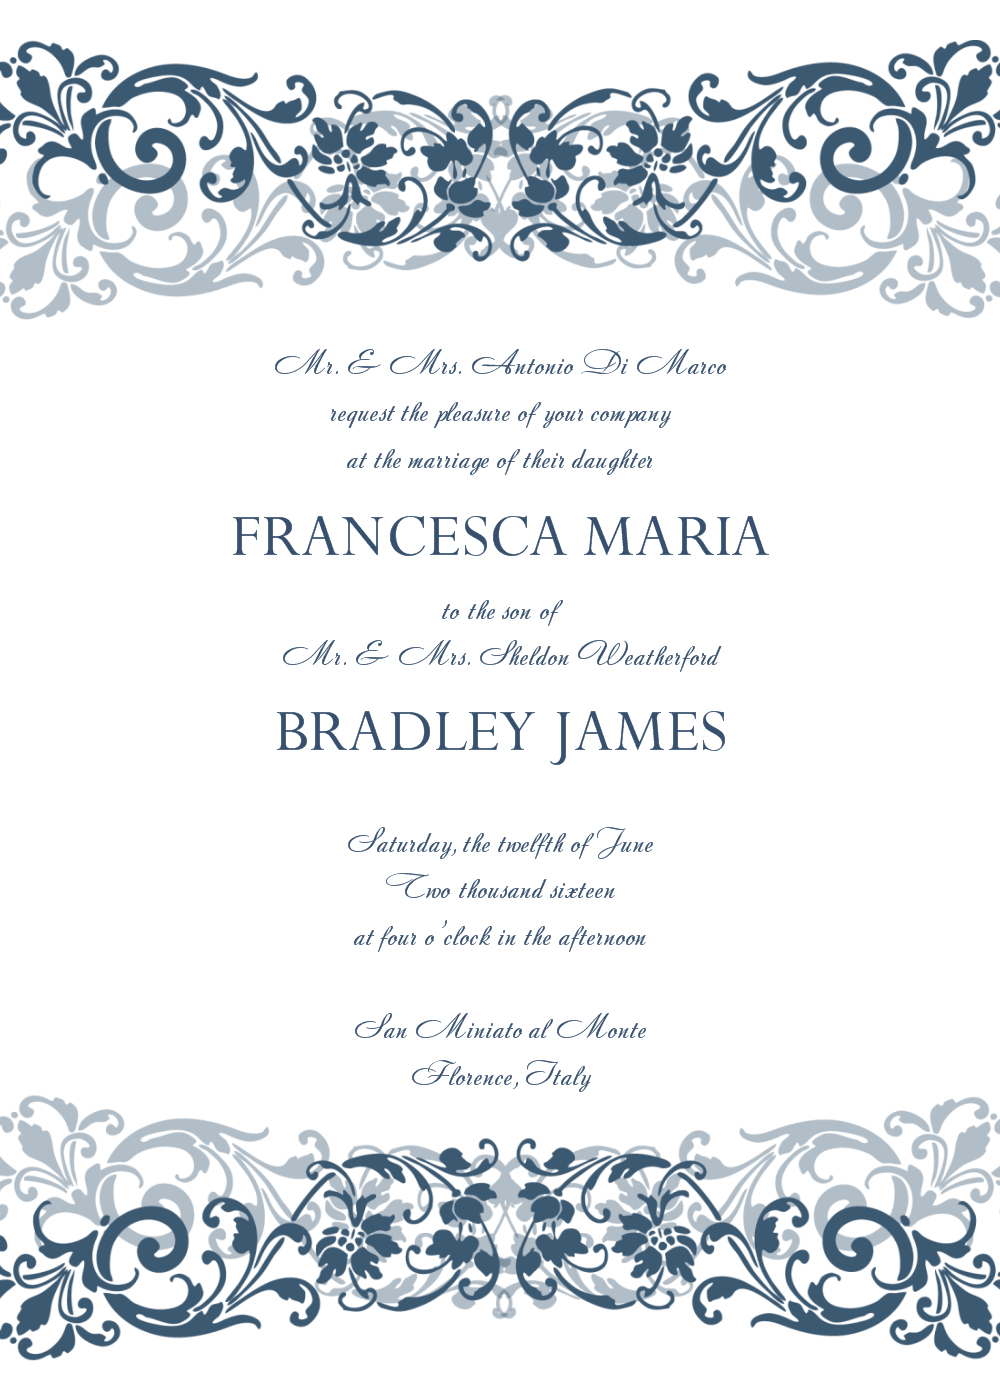 30+ Free Wedding Invitations Templates | 21St - Bridal World - Free Printable Wedding Scrolls